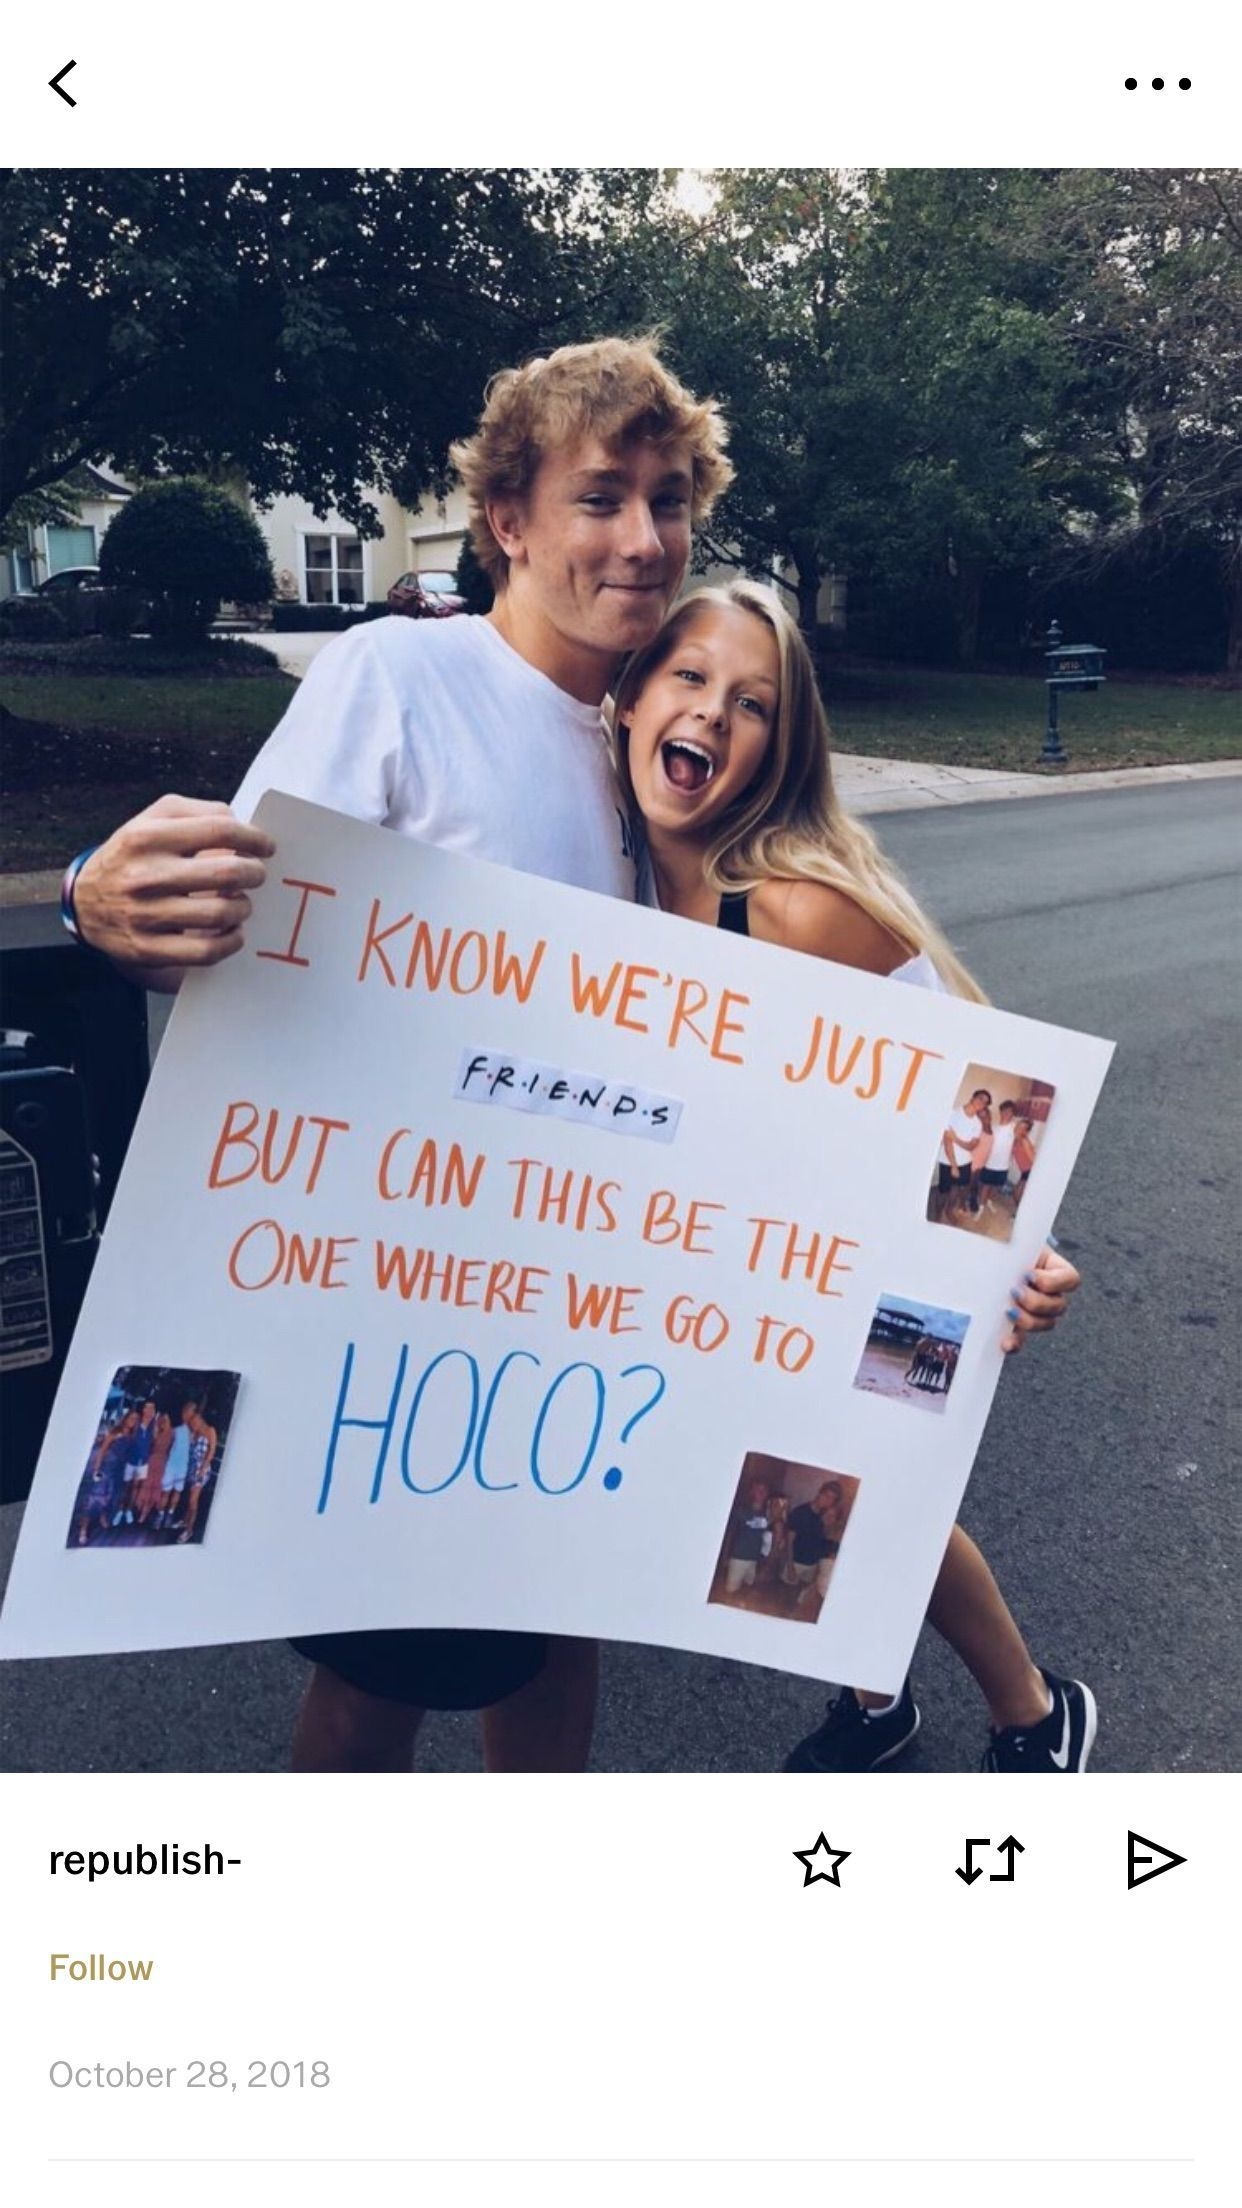 homecoming proposal #promproposal homecoming proposal #homecomingproposalideas